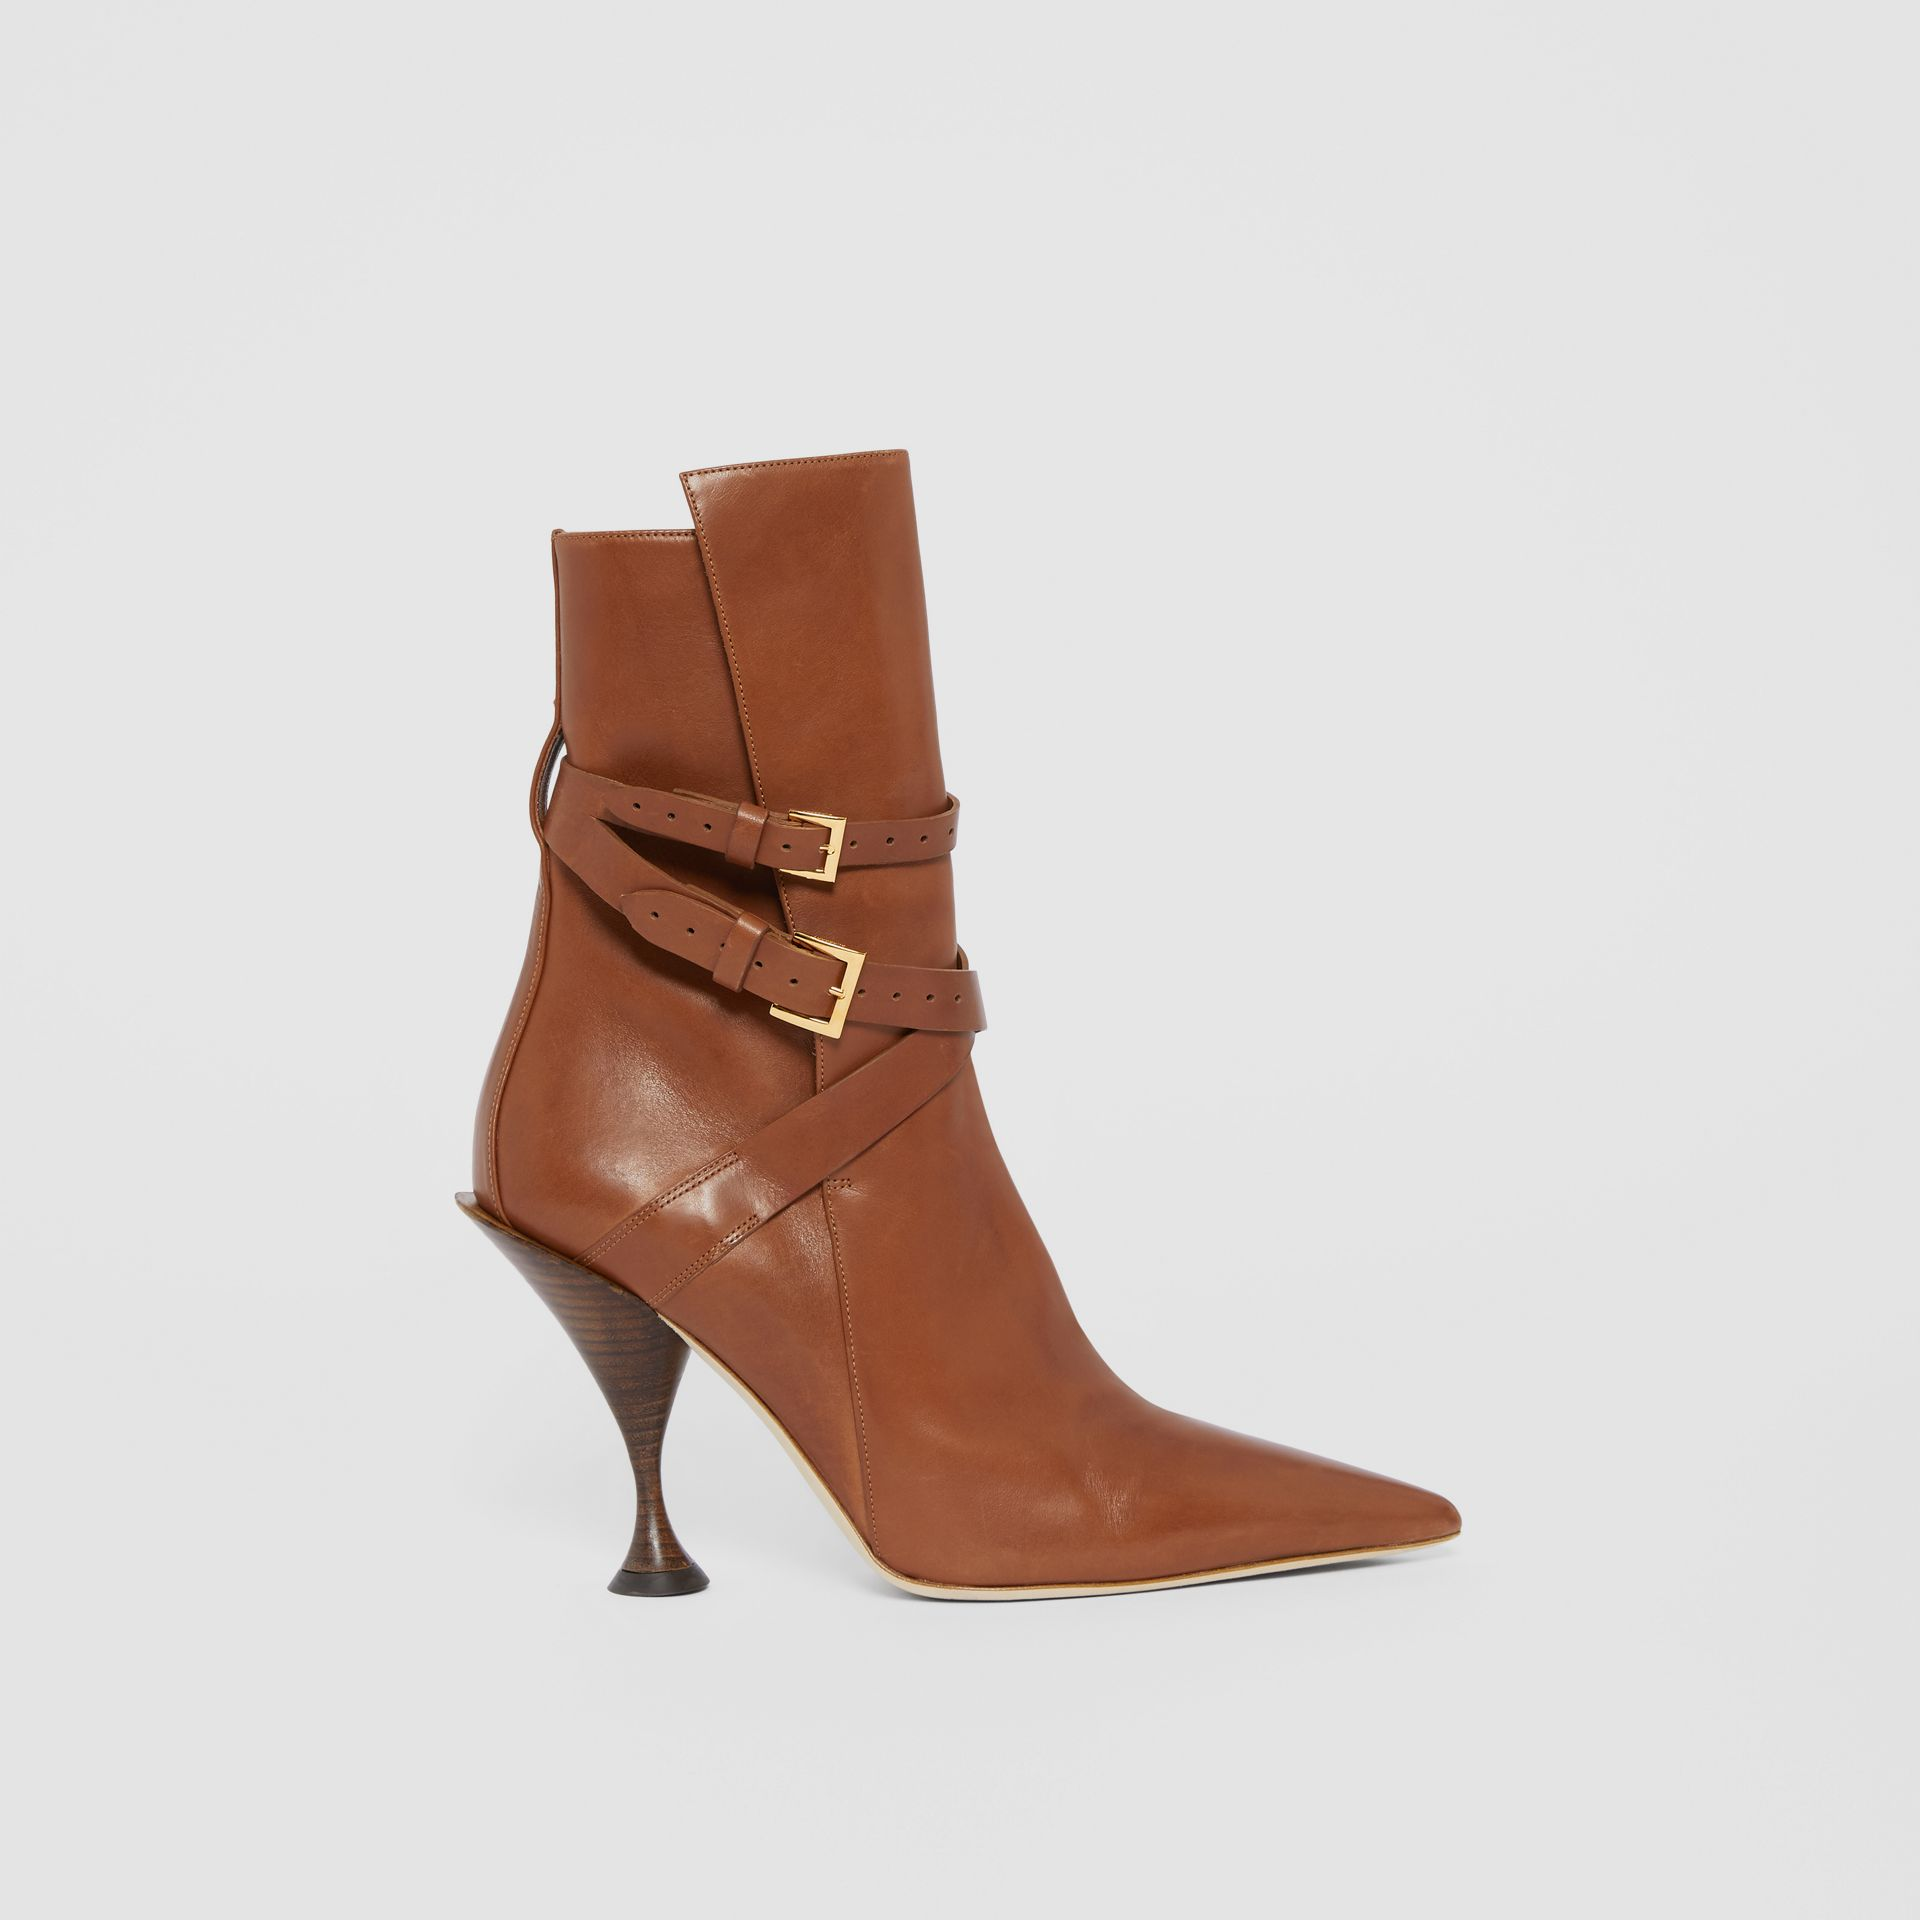 Strap Detail Leather Ankle Boots in Tan - Women | Burberry Hong Kong S.A.R - gallery image 5